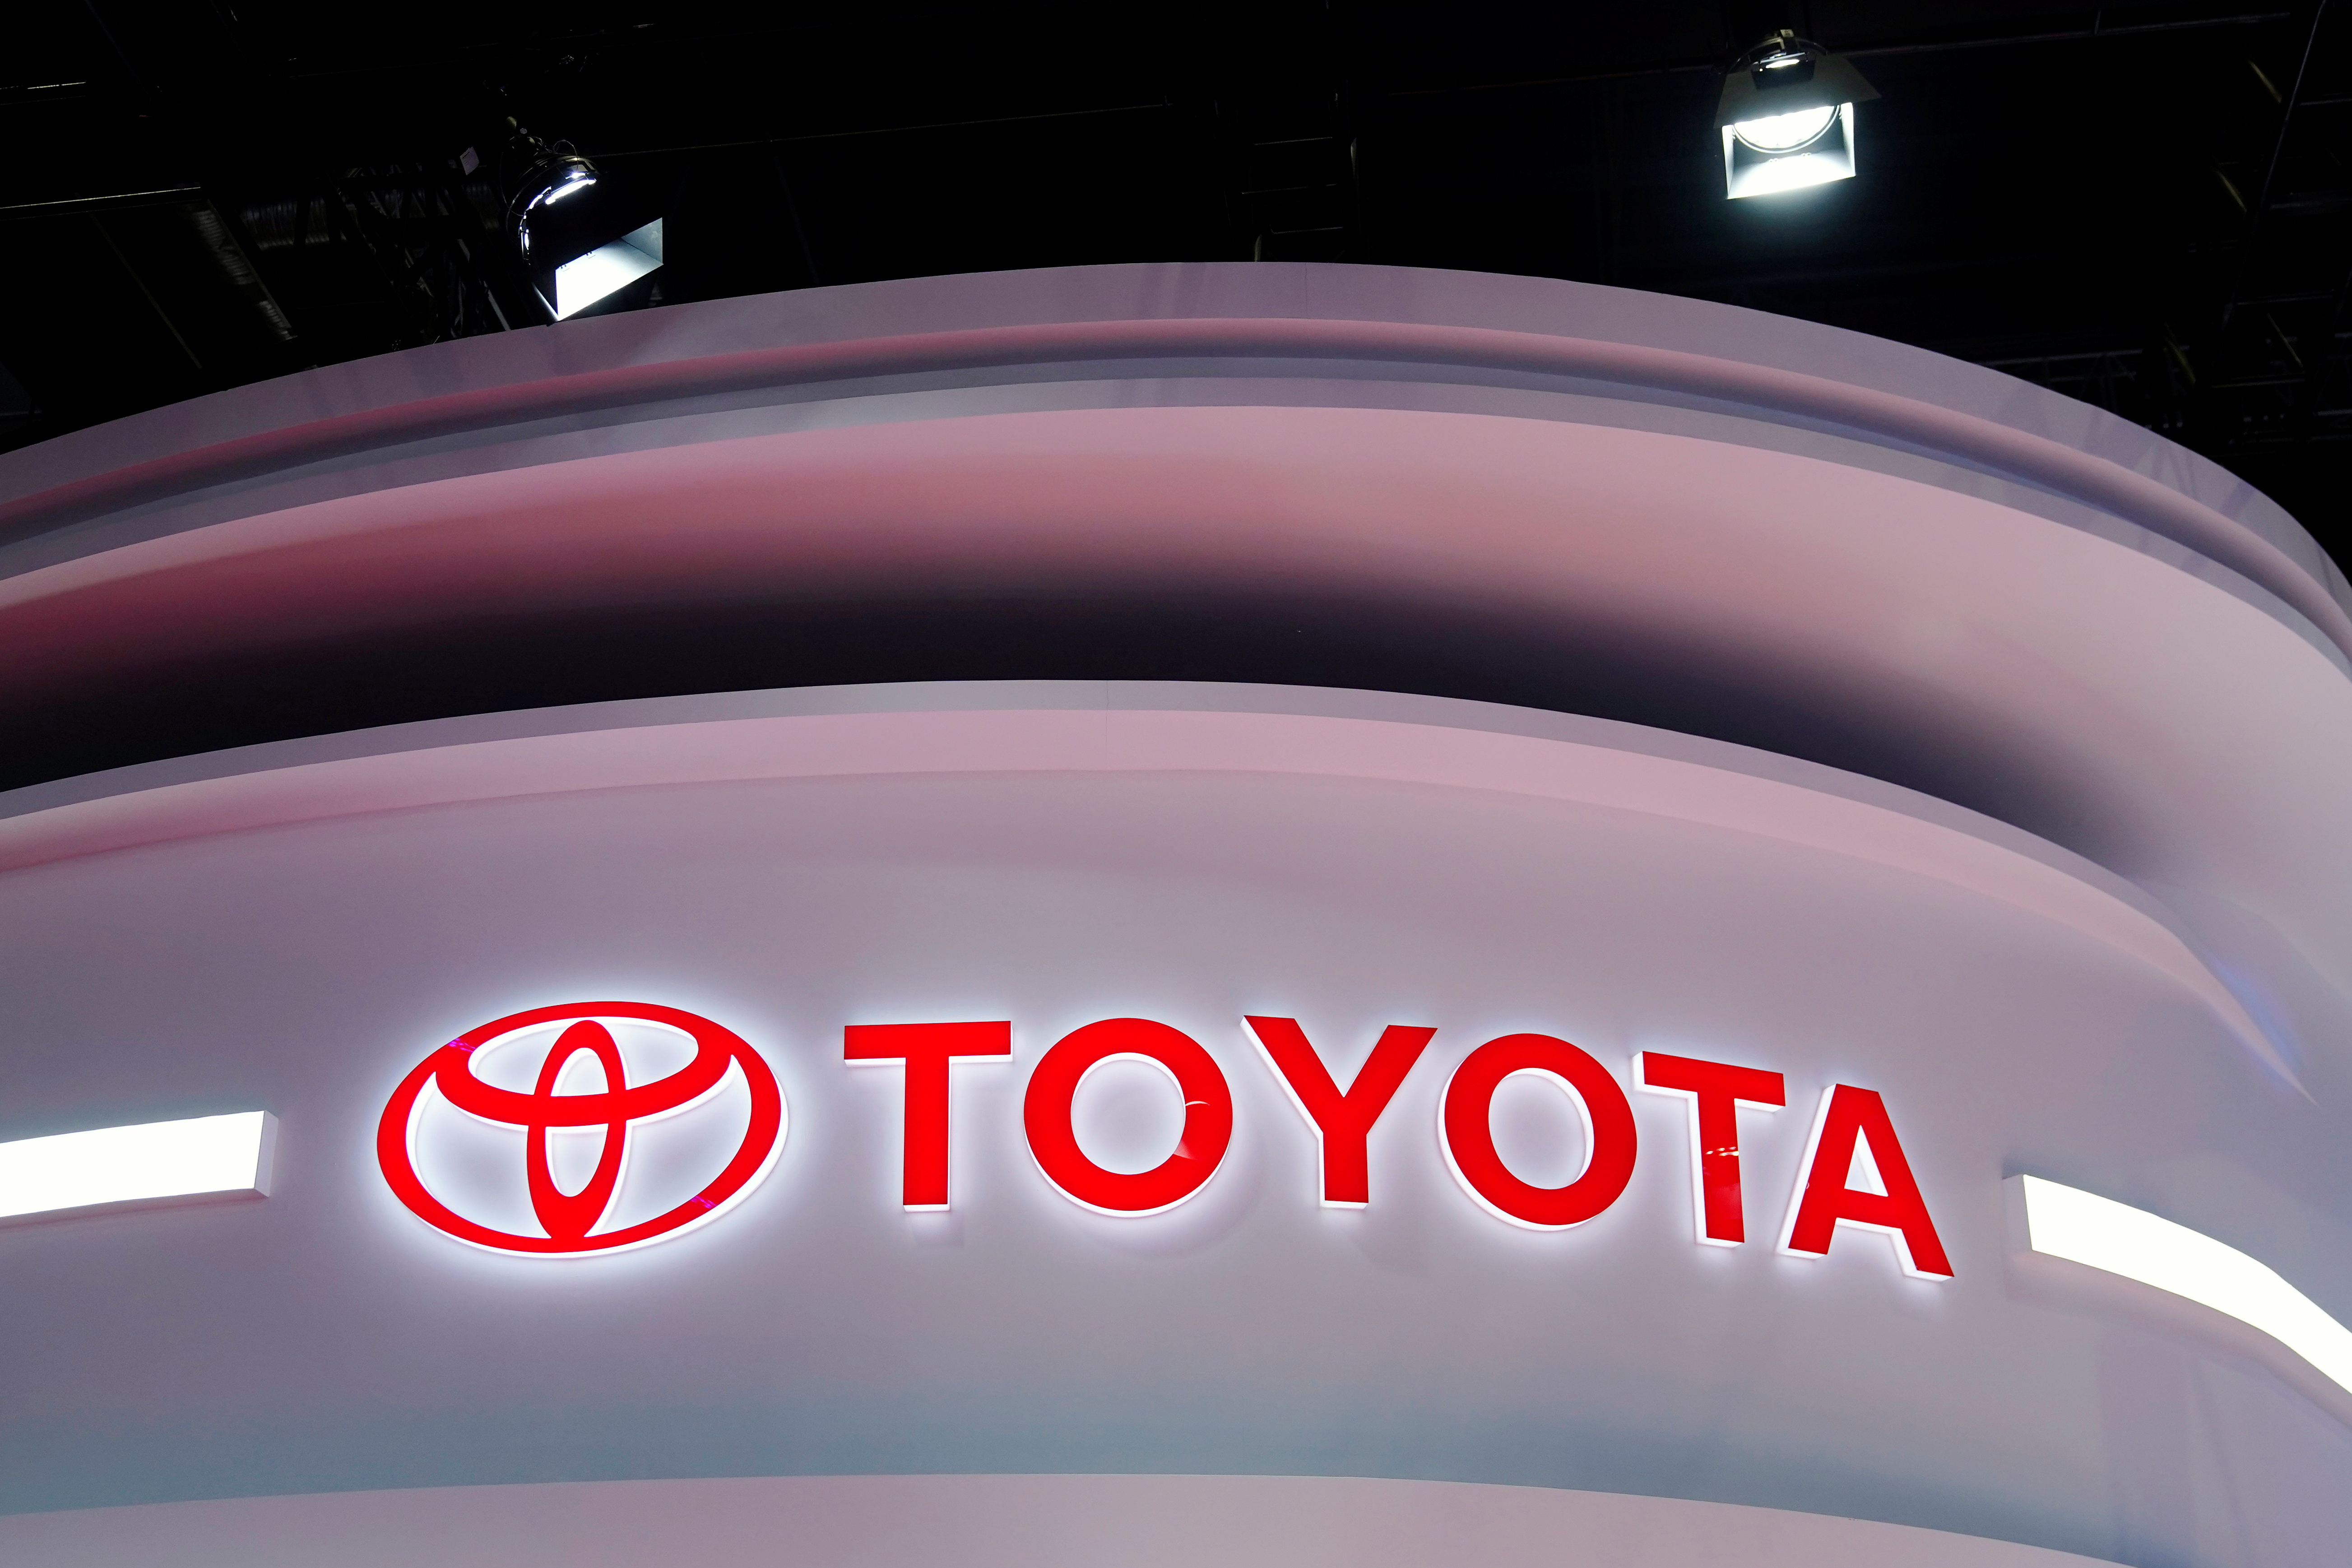 The Toyota logo is seen at its booth during a media day for the Auto Shanghai show in Shanghai, China April 19, 2021. REUTERS/Aly Song